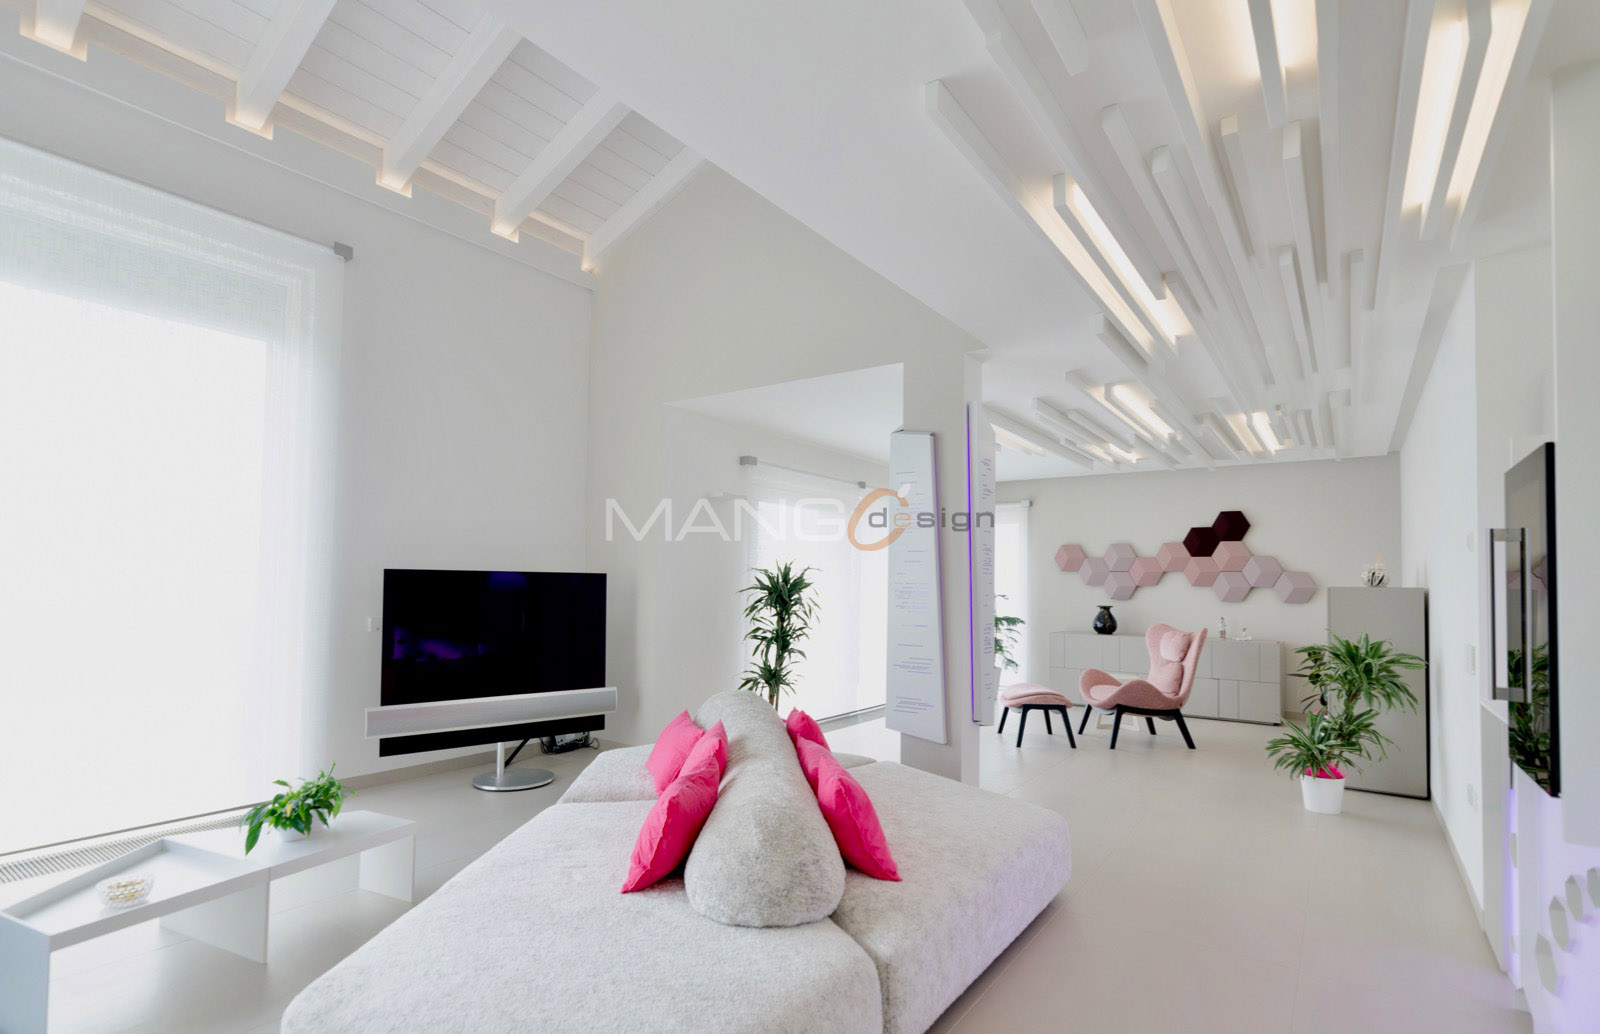 mangodesign_living_01